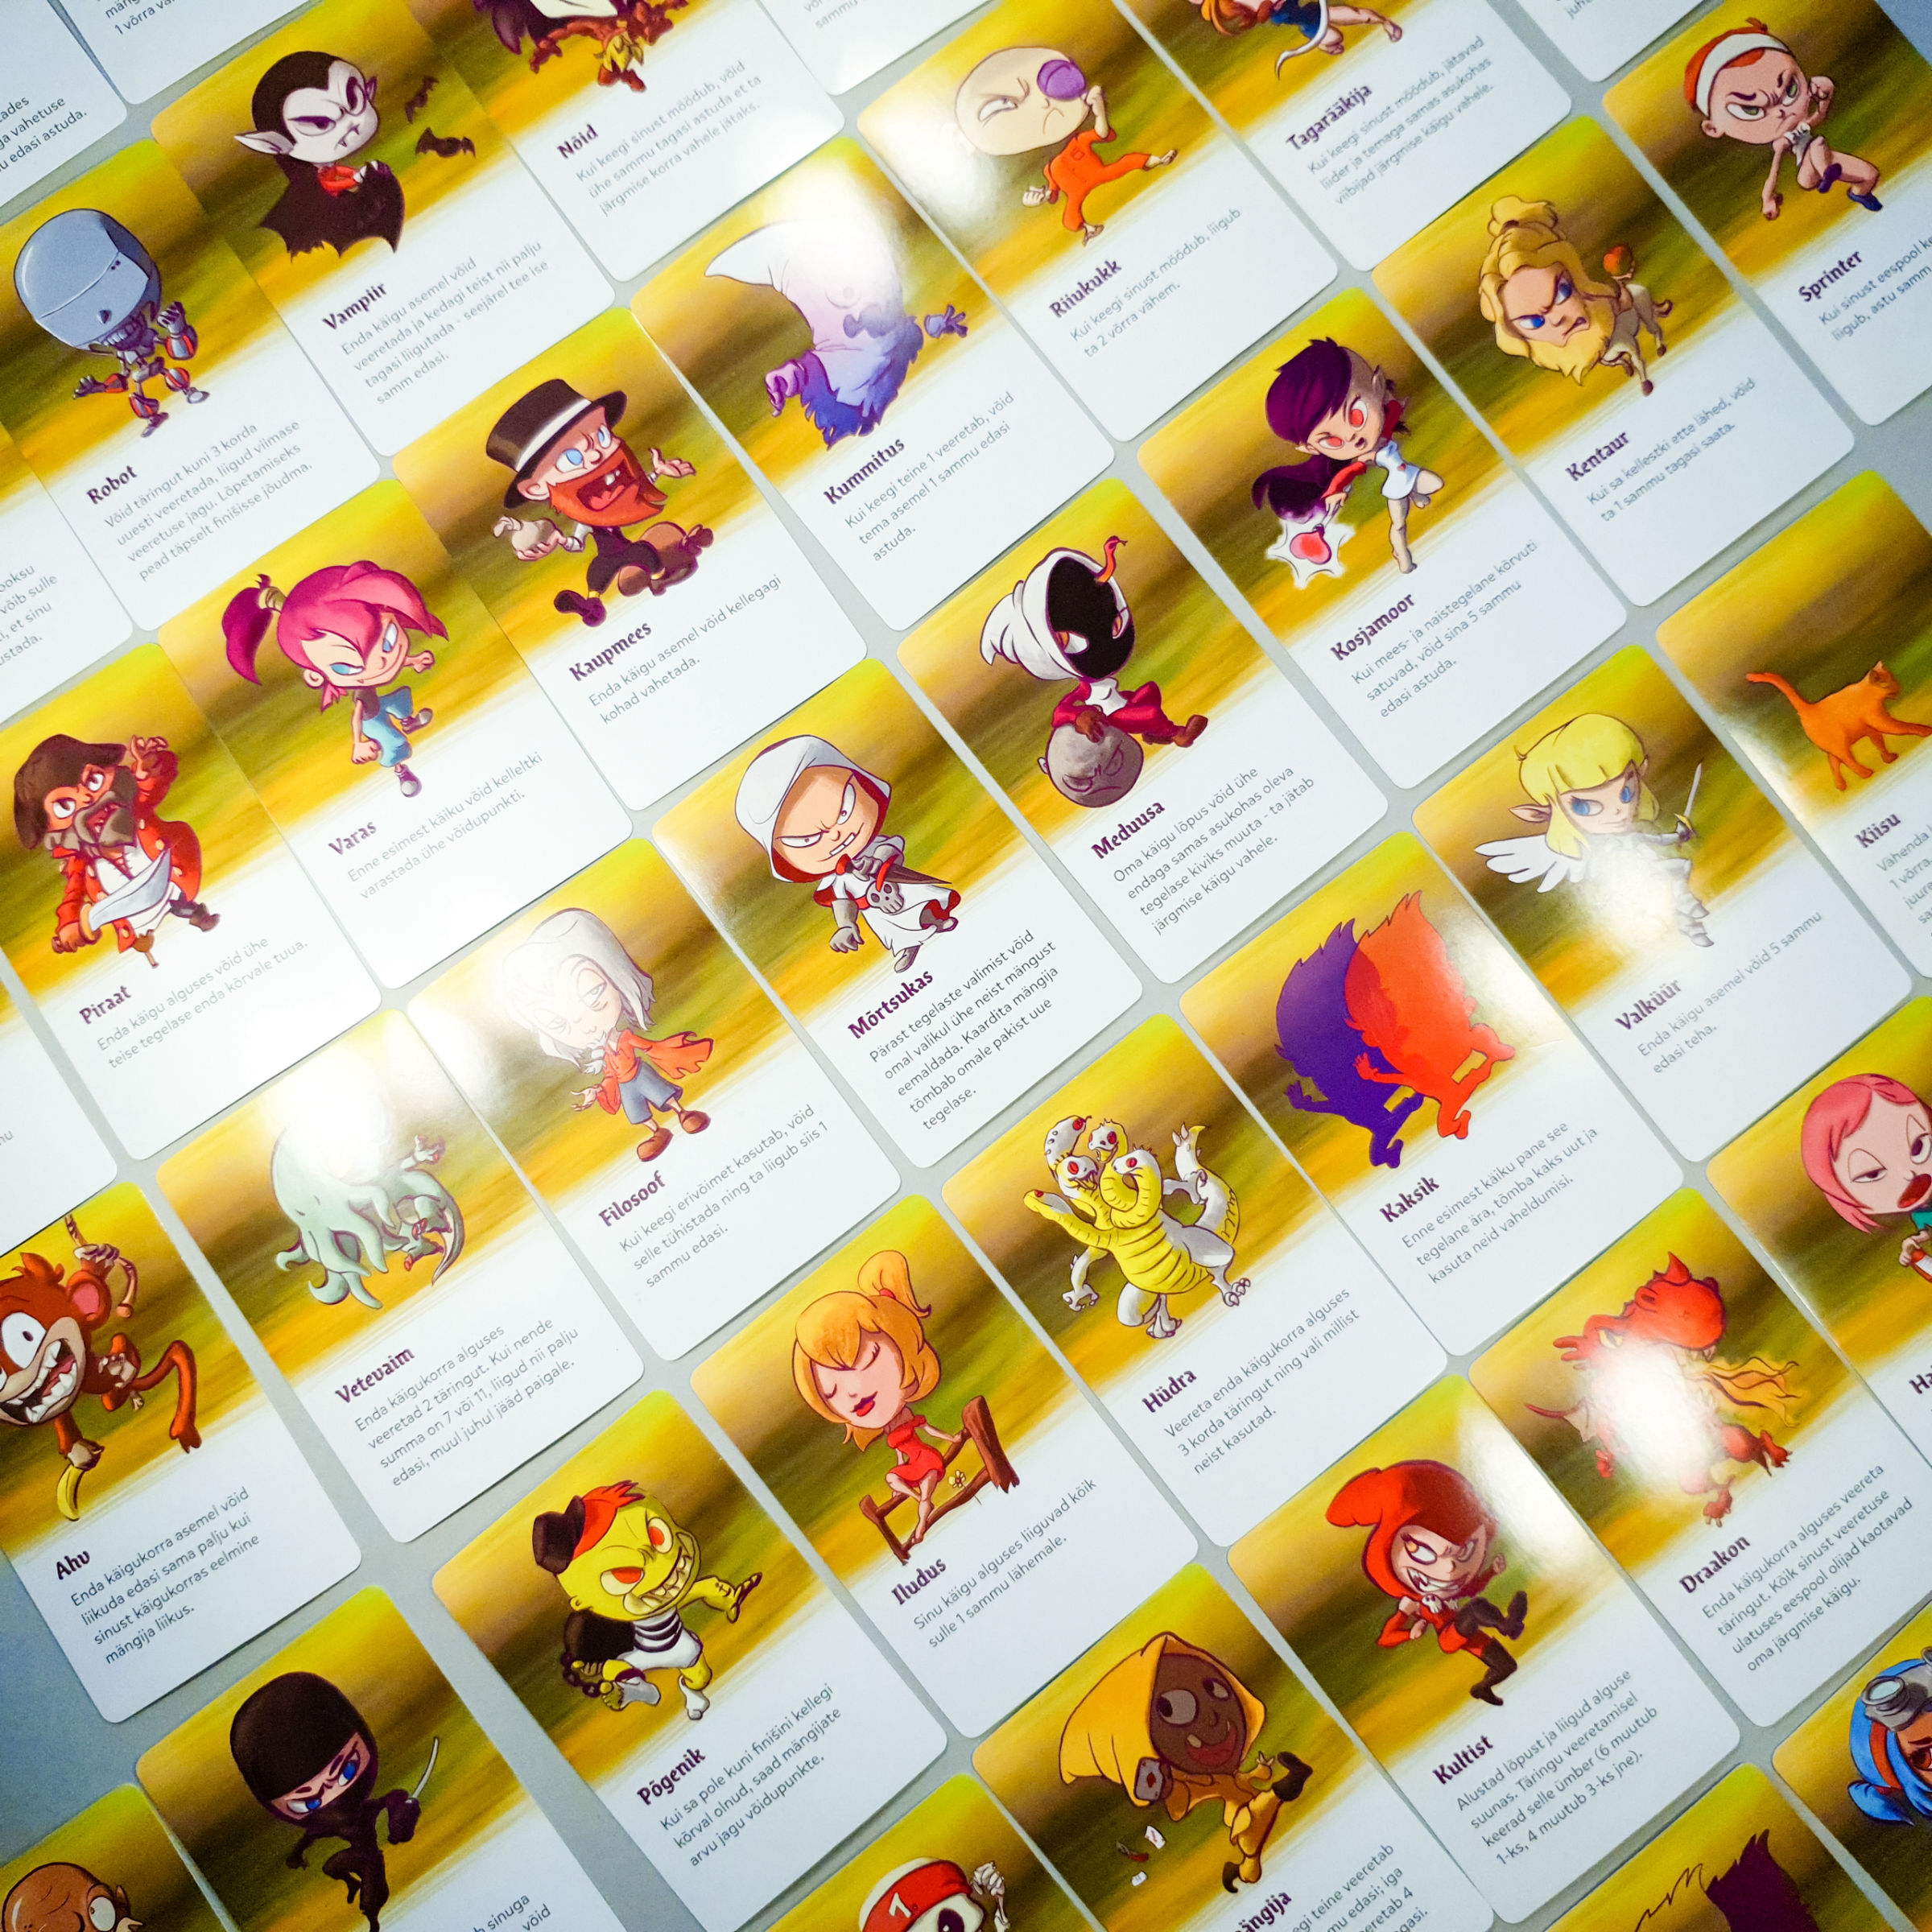 Grid of 20 character cards